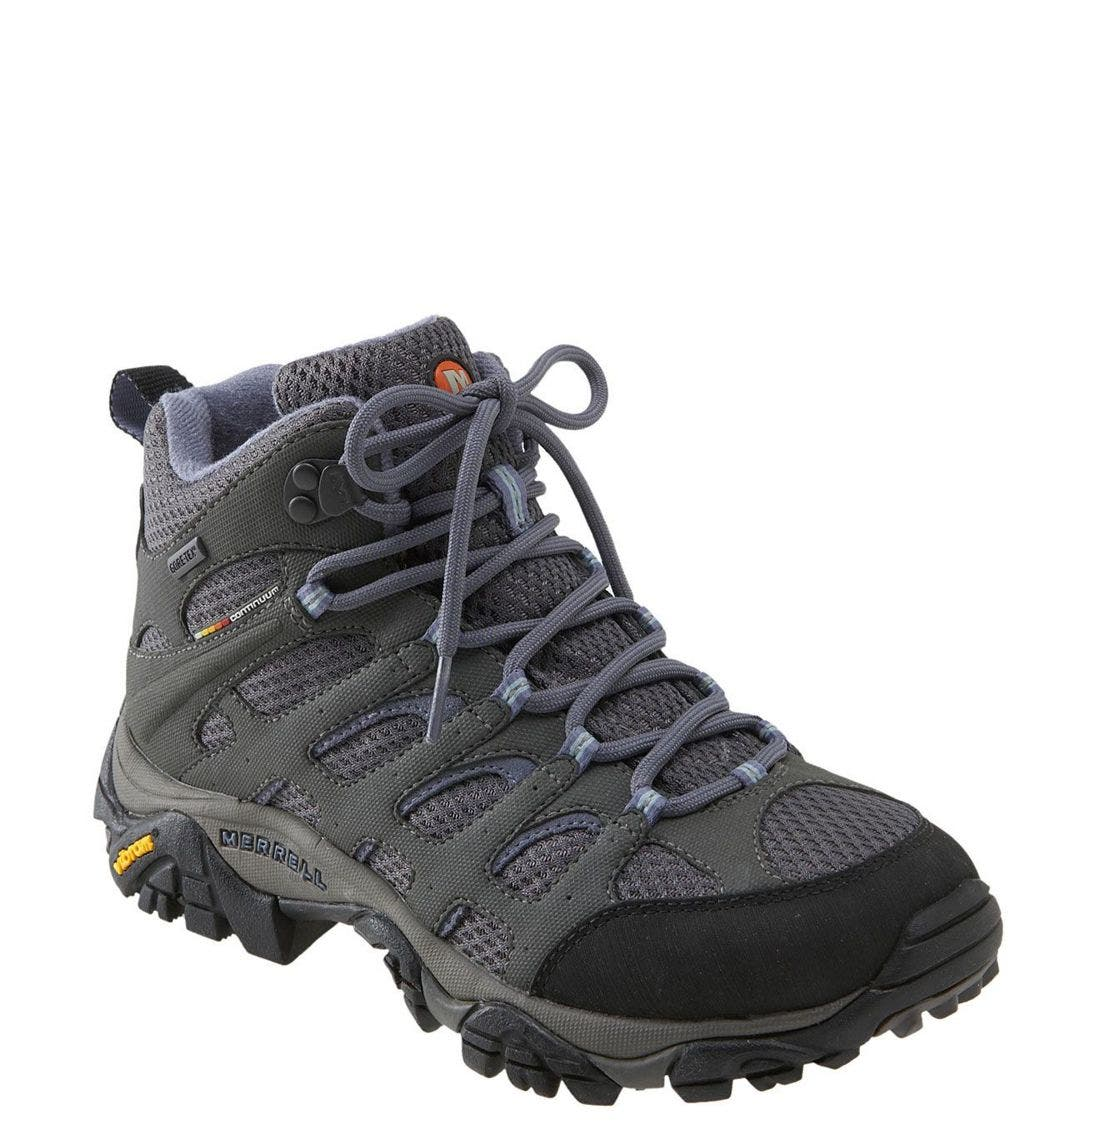 Alternate Image 1 Selected - Merrell 'Moab Mid GTX XCR' Hiking Boot (Women)